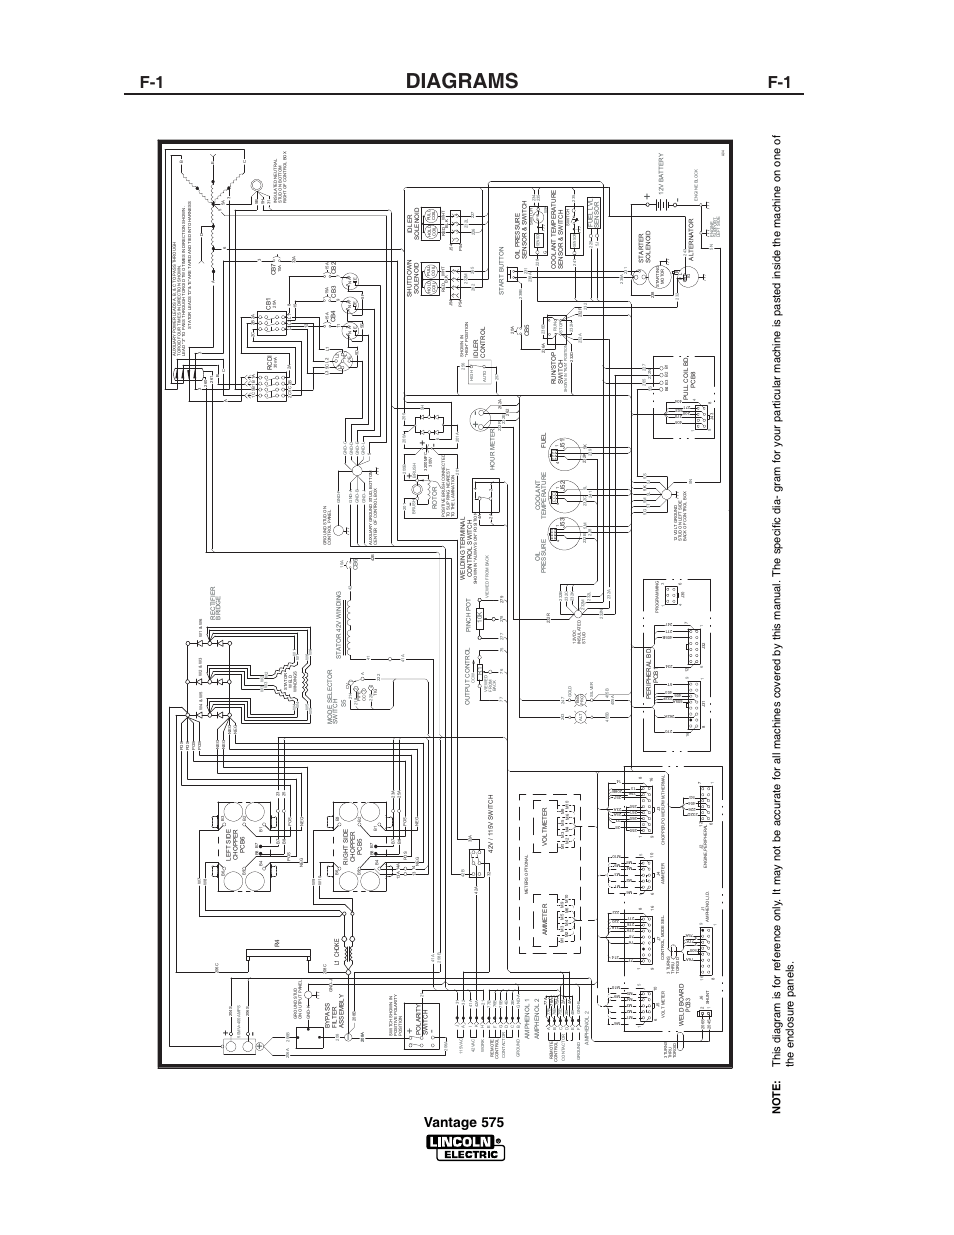 hight resolution of diagrams vantage 575 g4176 lincoln electric vantage 575 user manual page 36 54